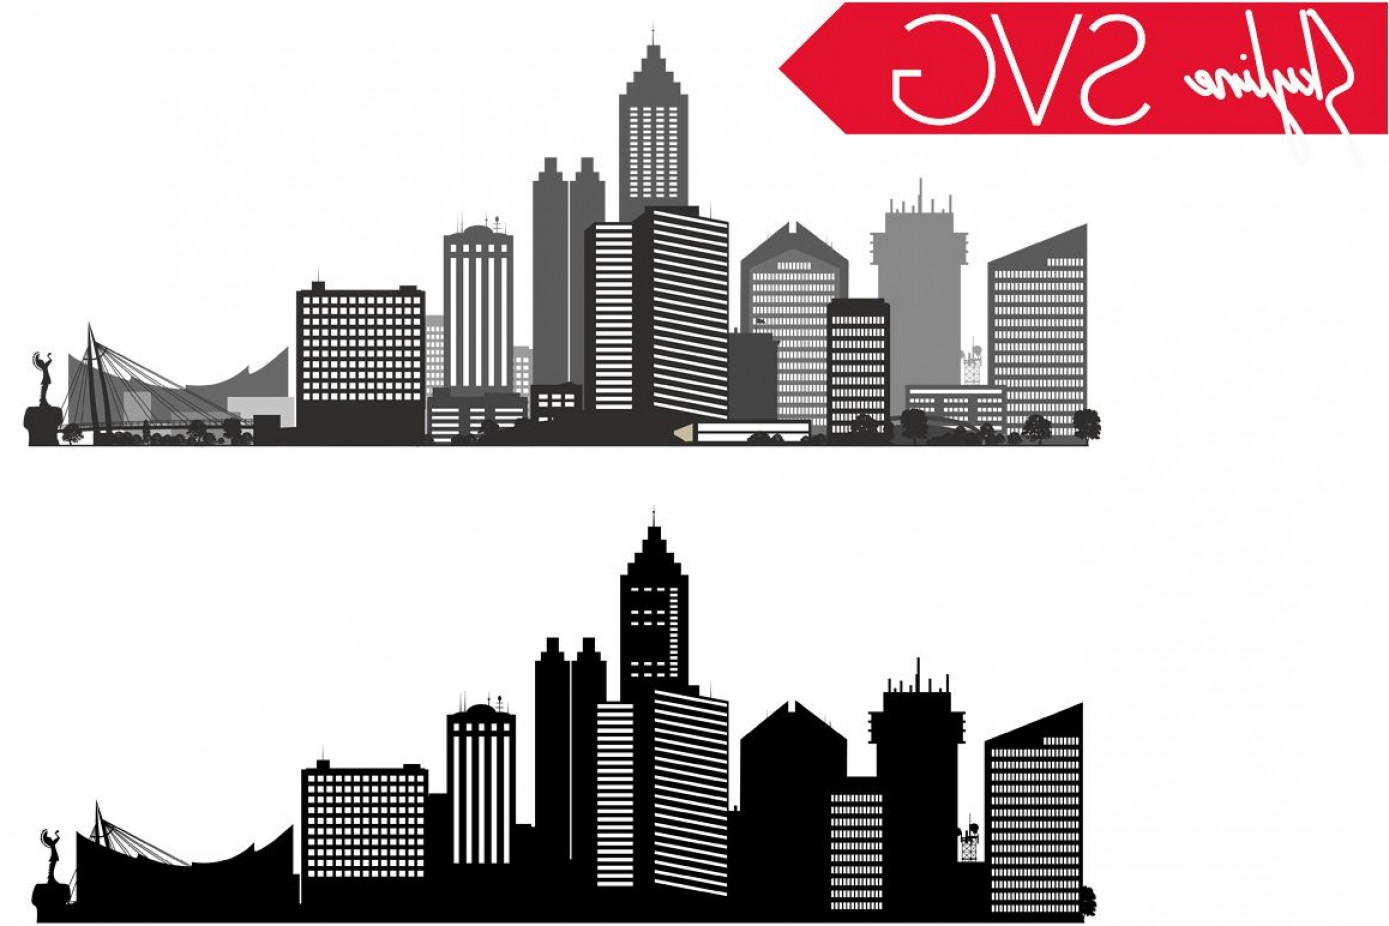 City Vector: Wichita Svg Kansas Svg City Vector Skyline Silhouette Usa City Svg Jpg Png Dxf Cdr Eps Ai